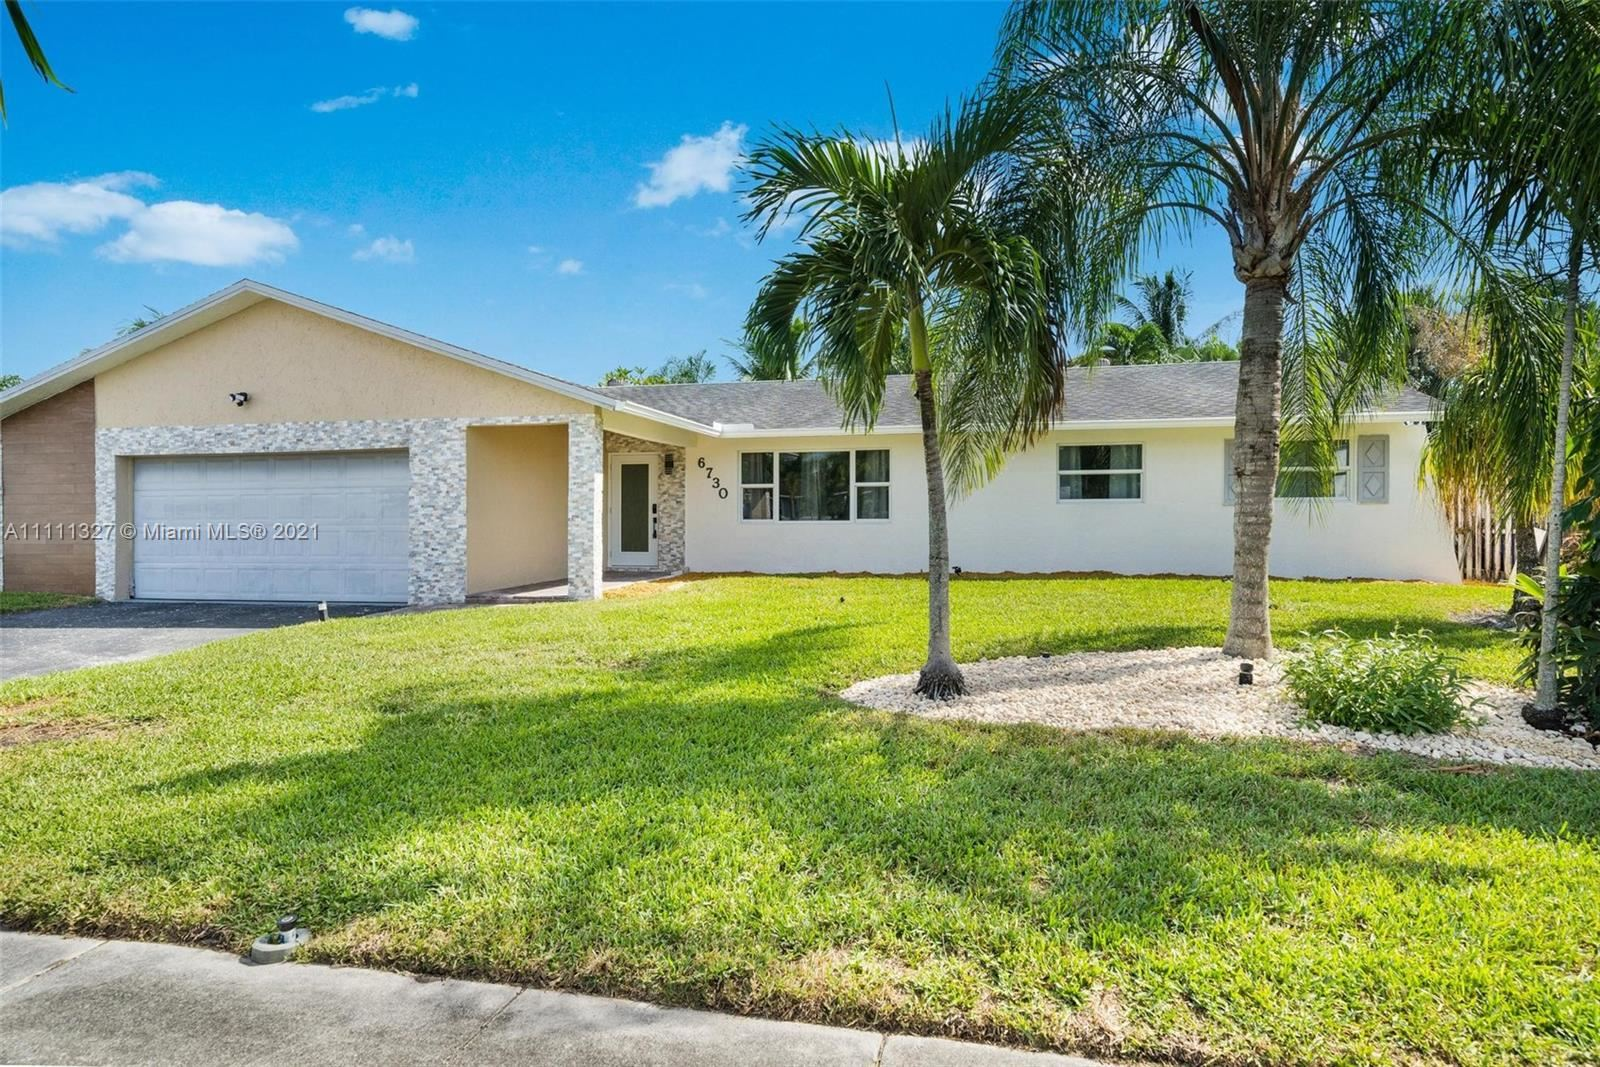 Photo of 6730 NW 26th Ter, Fort Lauderdale, FL 33309 (MLS # A11111327)